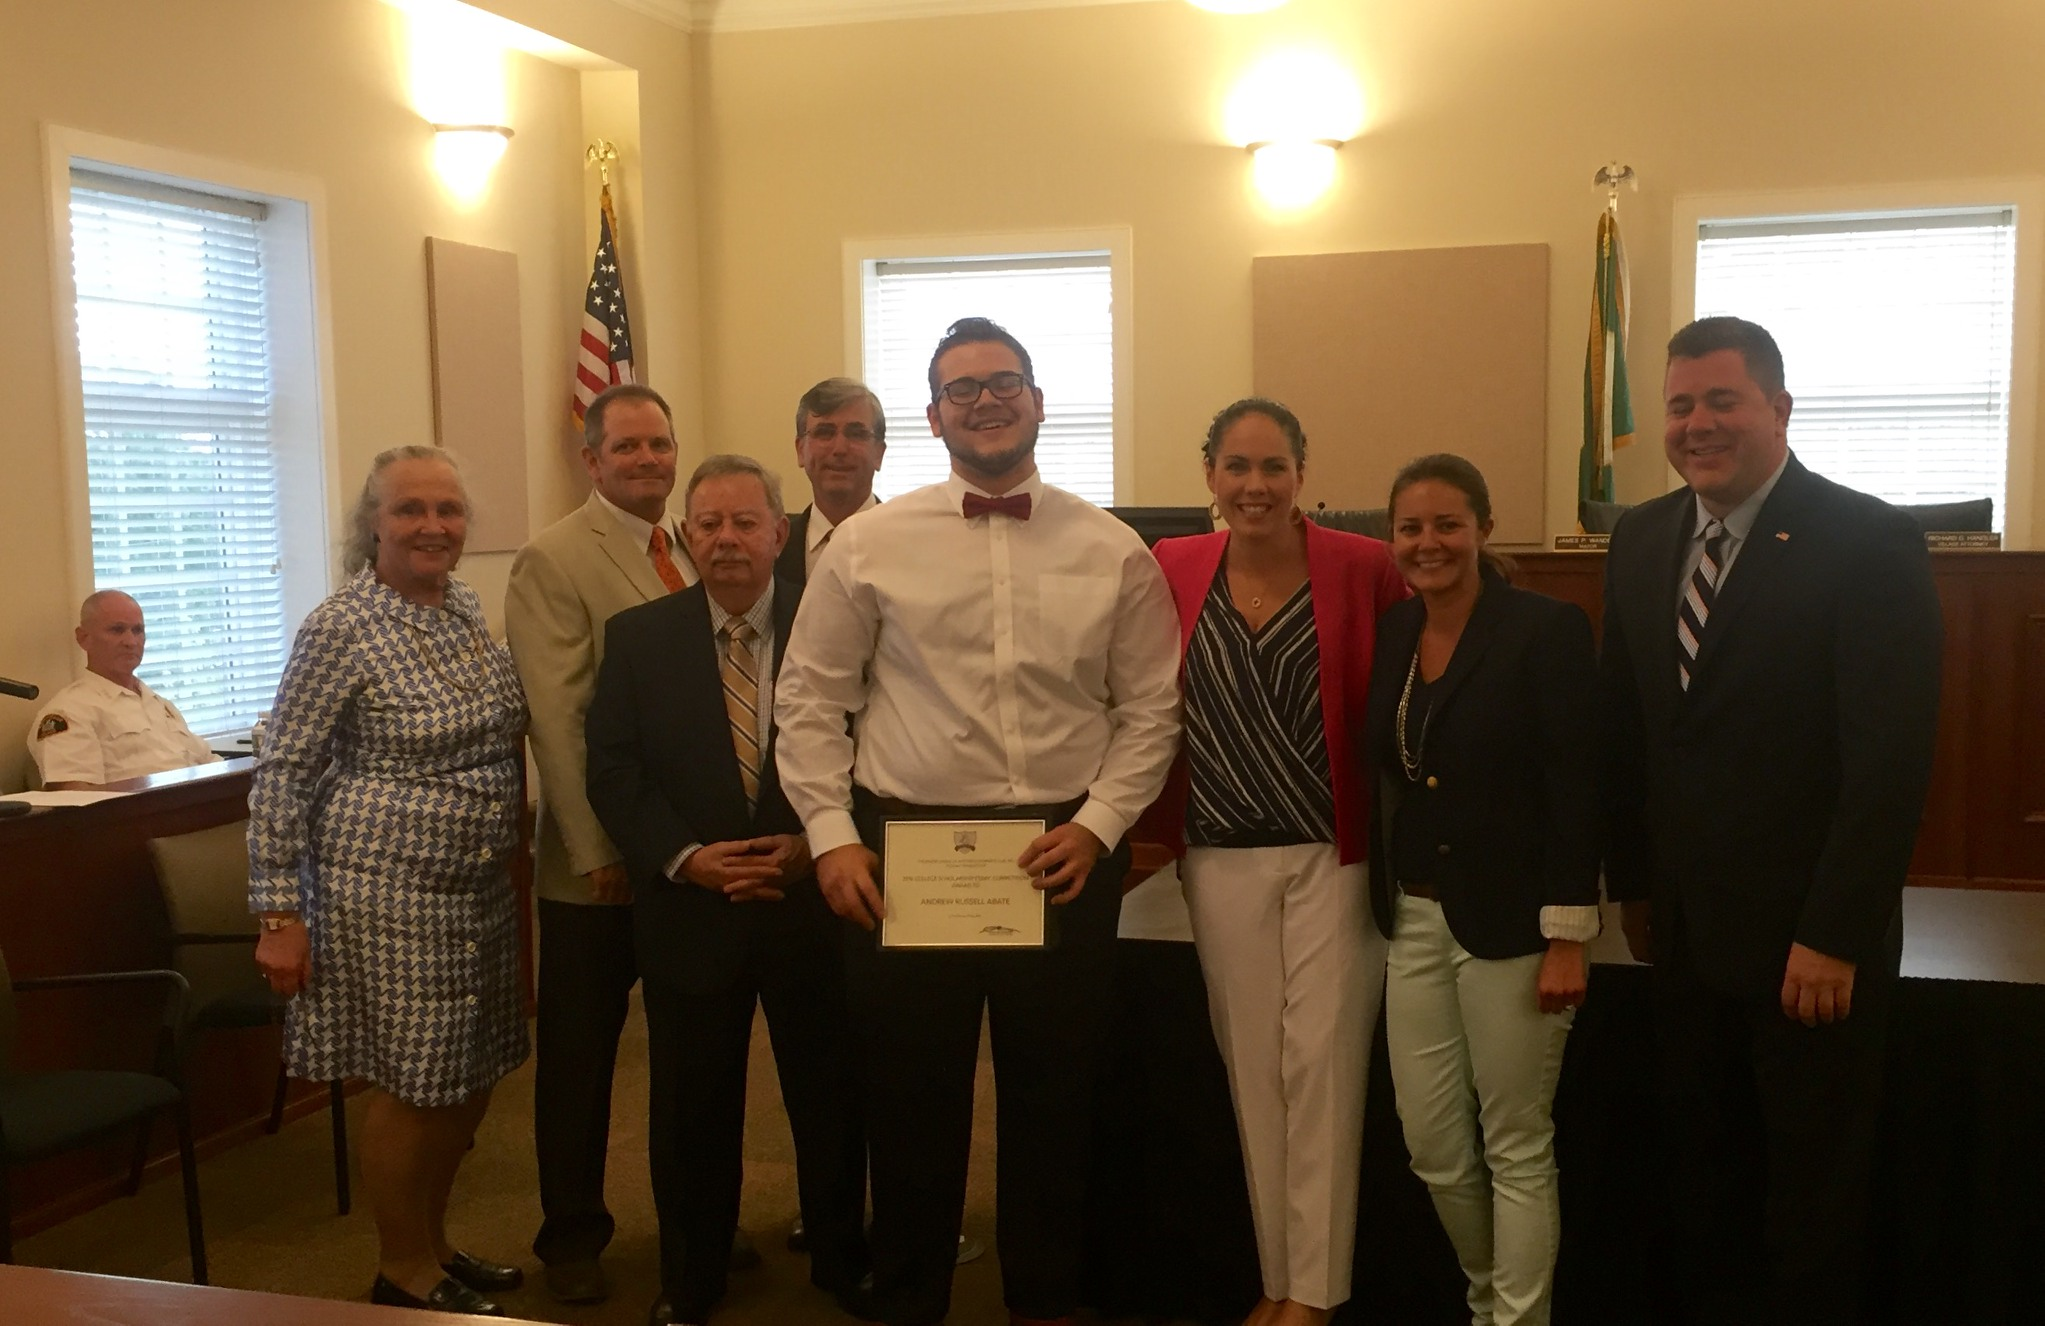 ANDREW WITH THE JUNIOR LEAGUE AND THE VILLAGE TRUSTEES AND MAYOR